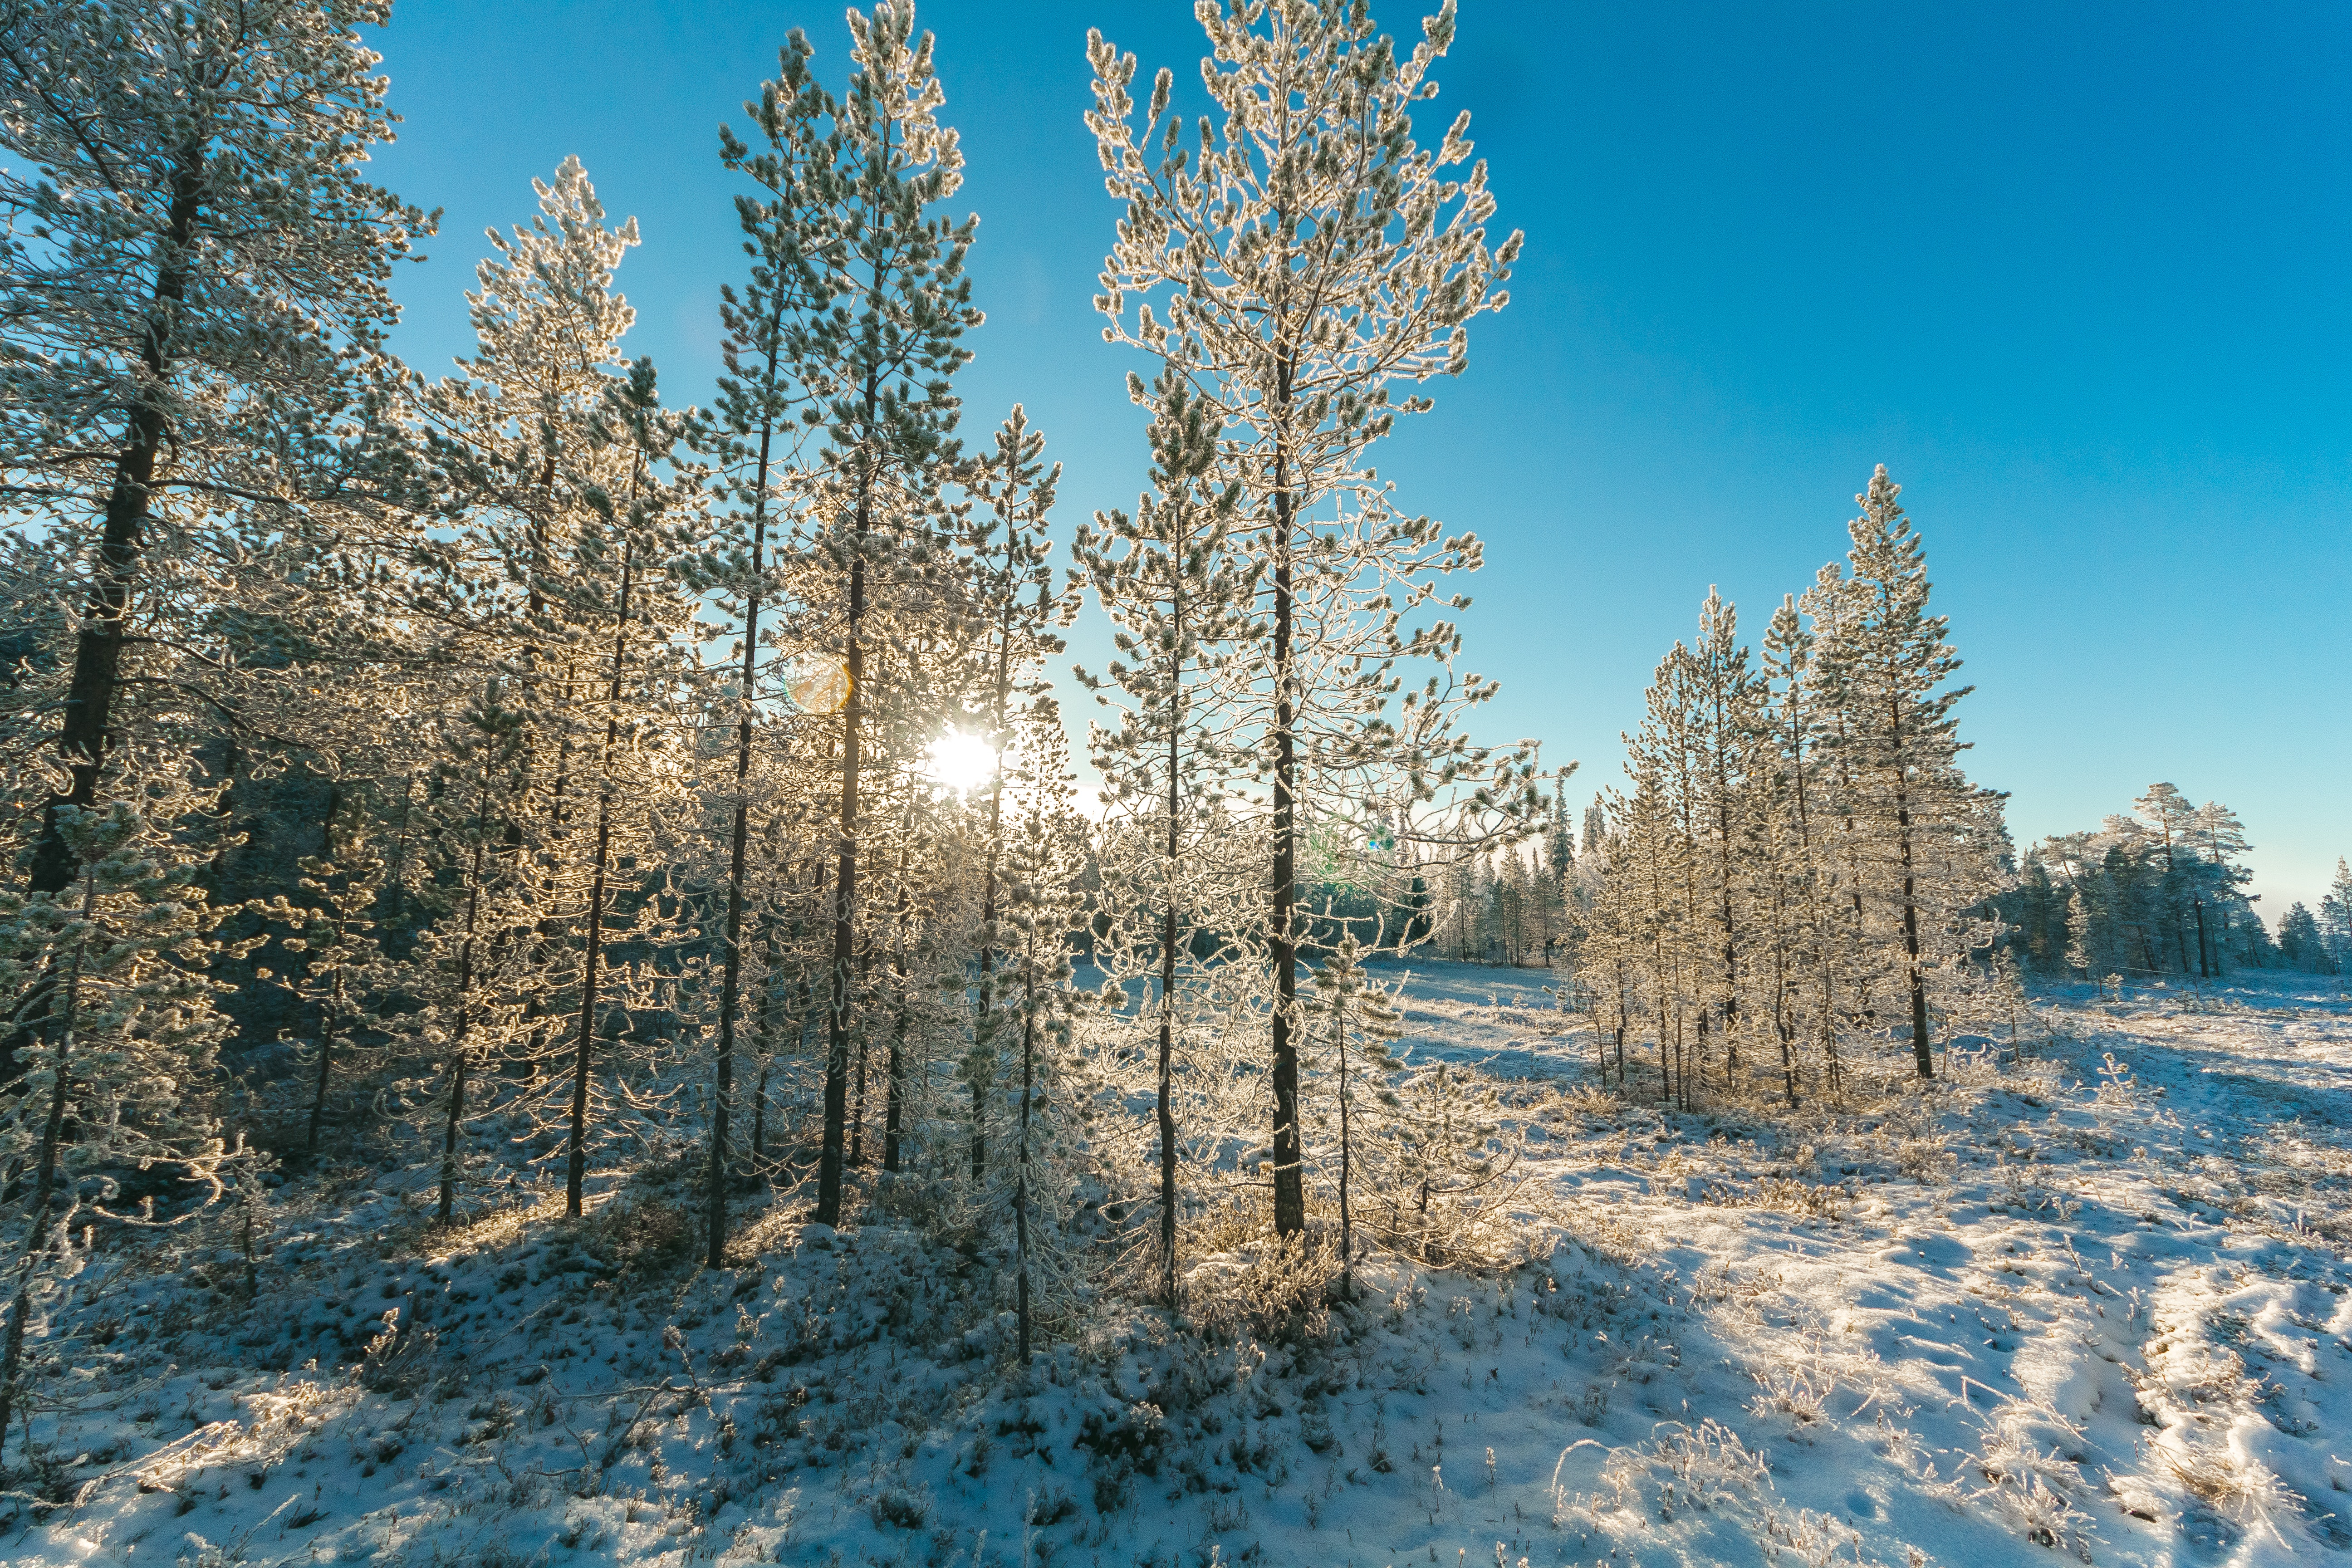 Snow Covered Trees and Mountain Slope, Branches, Pines, Winter landscape, Winter, HQ Photo